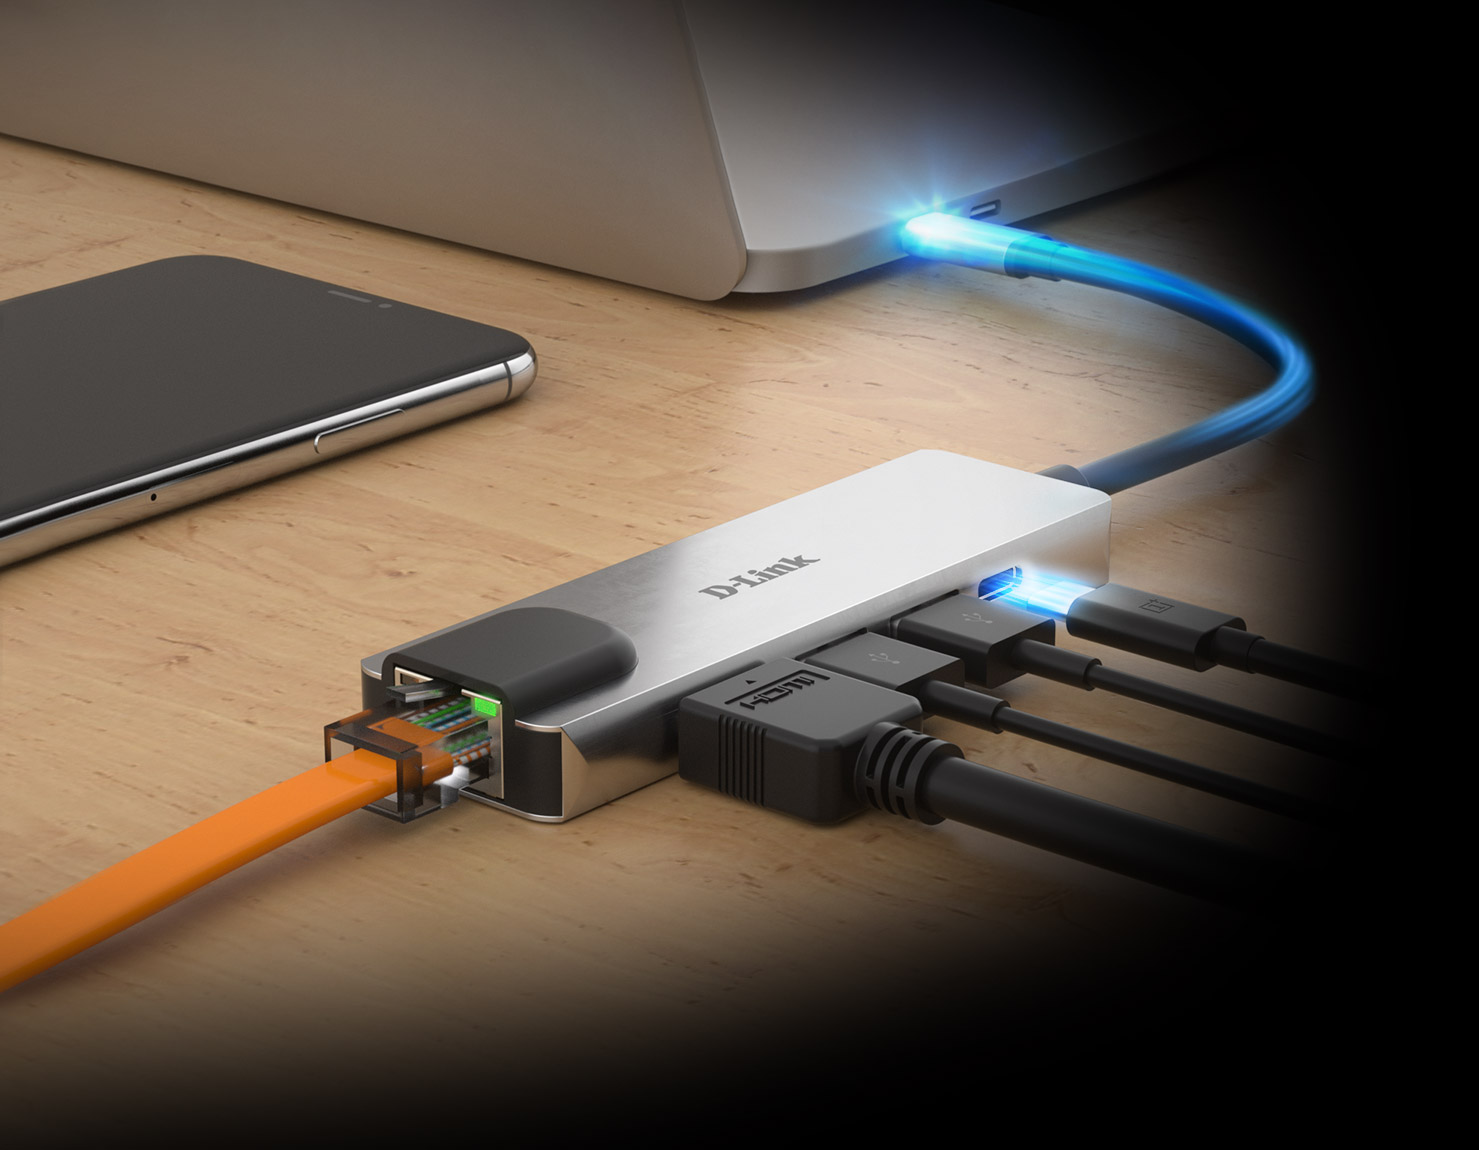 DUB-M520 5-in-1 USB-C Hub with HDMI/Ethernet and Power Delivery with Power Delivery to a laptop and example connections